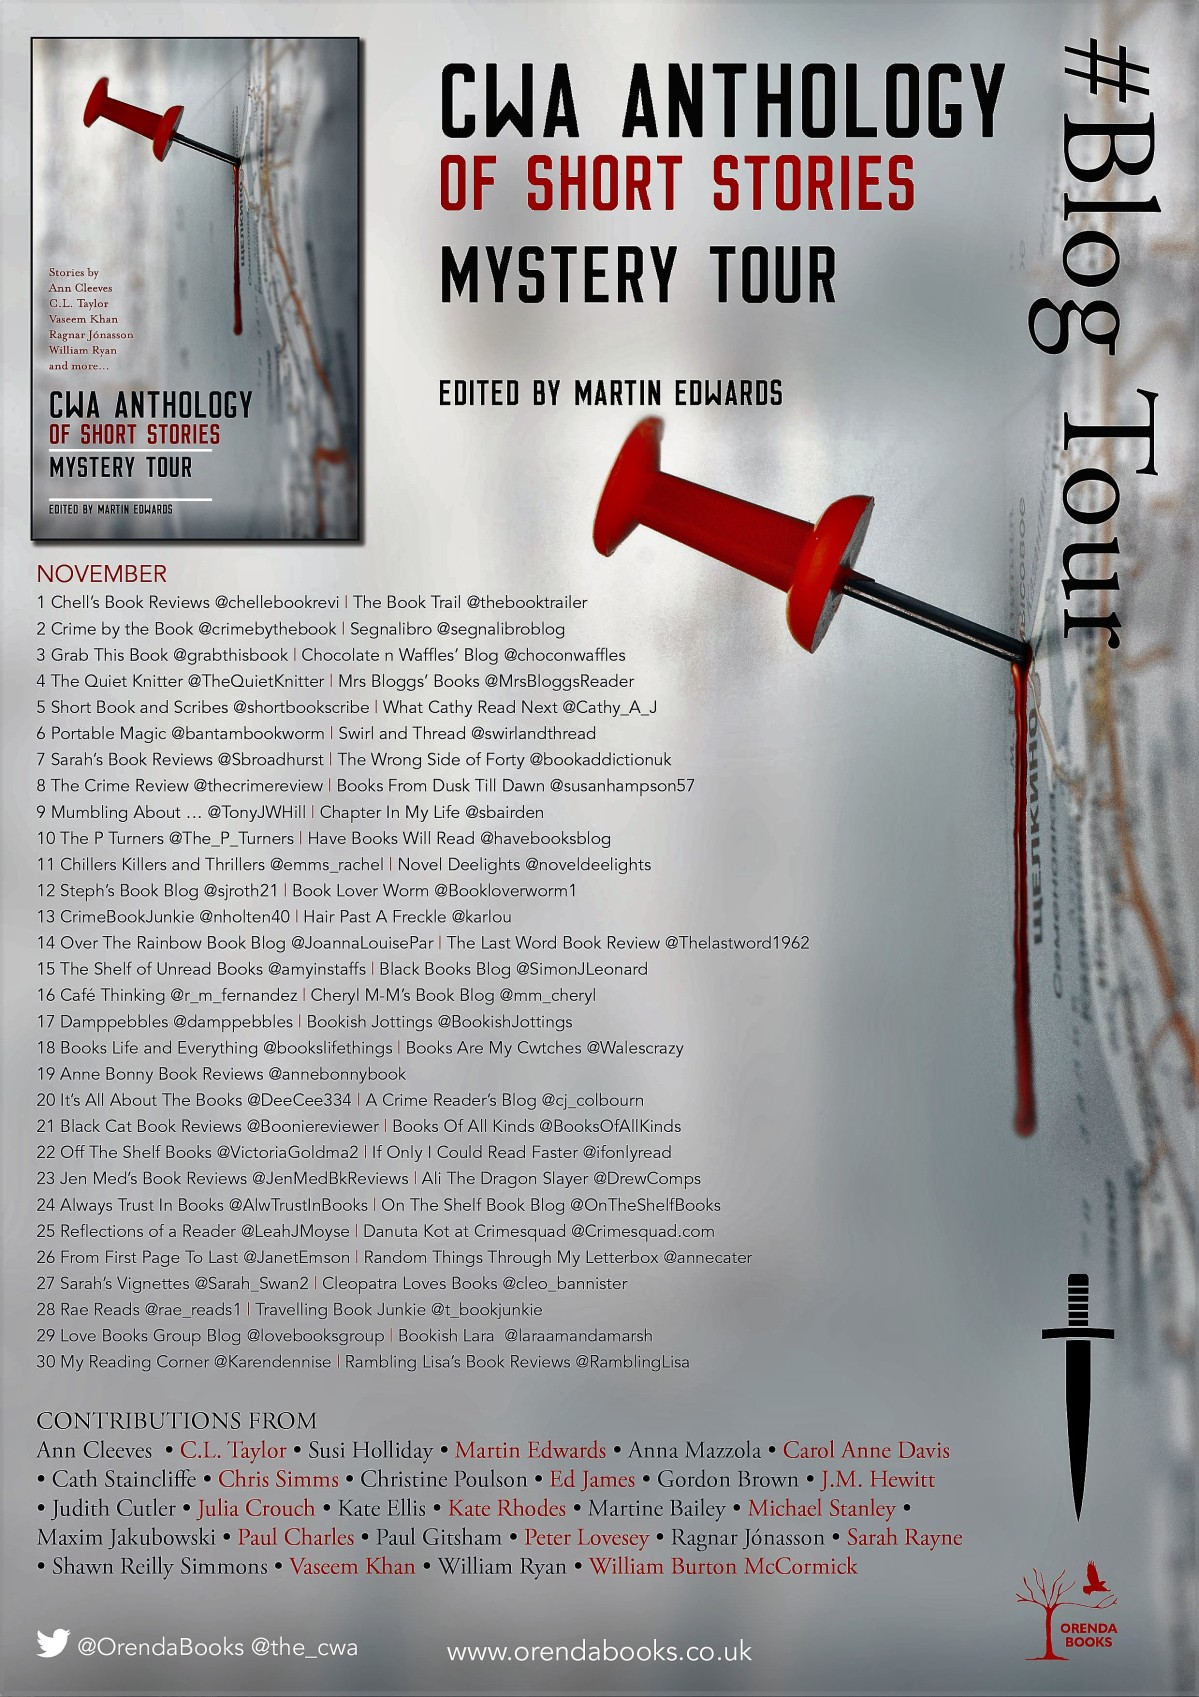 Mystery Tour Edited by Martin Edwards #CWAAnthology #BookReview#BlogTour